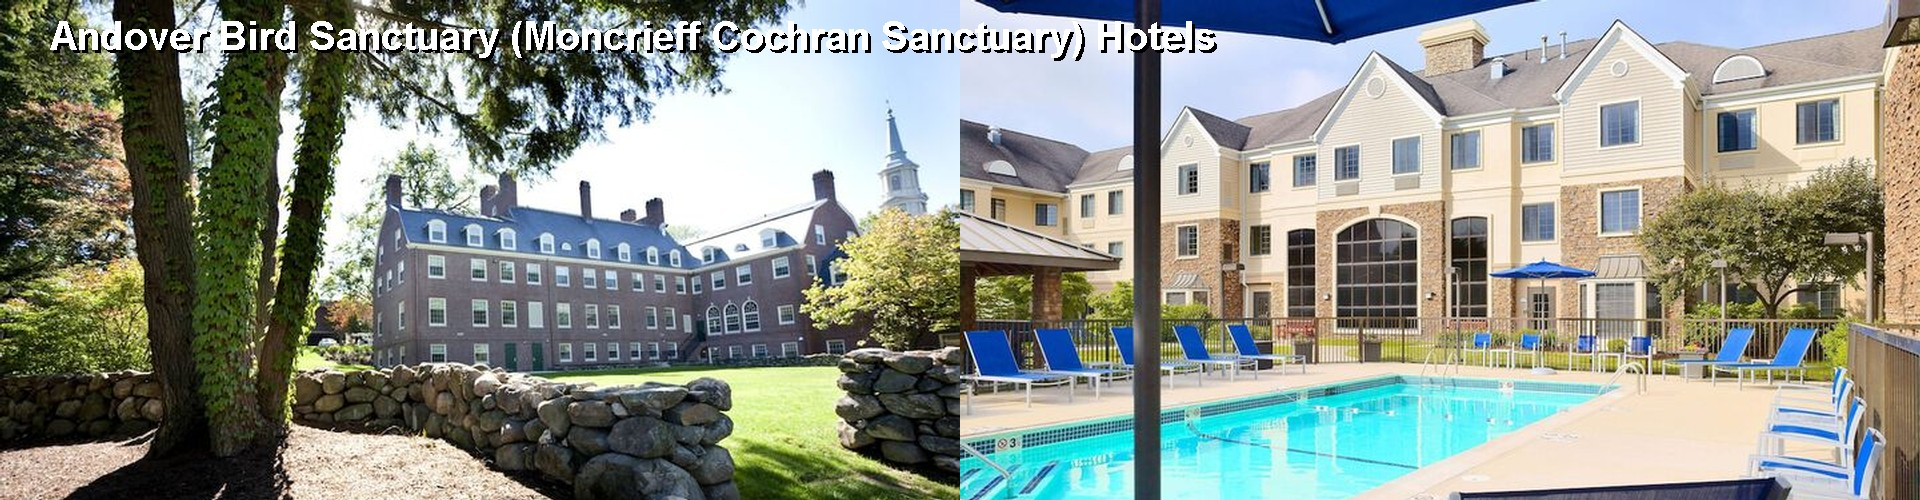 5 Best Hotels near Andover Bird Sanctuary (Moncrieff Cochran Sanctuary)